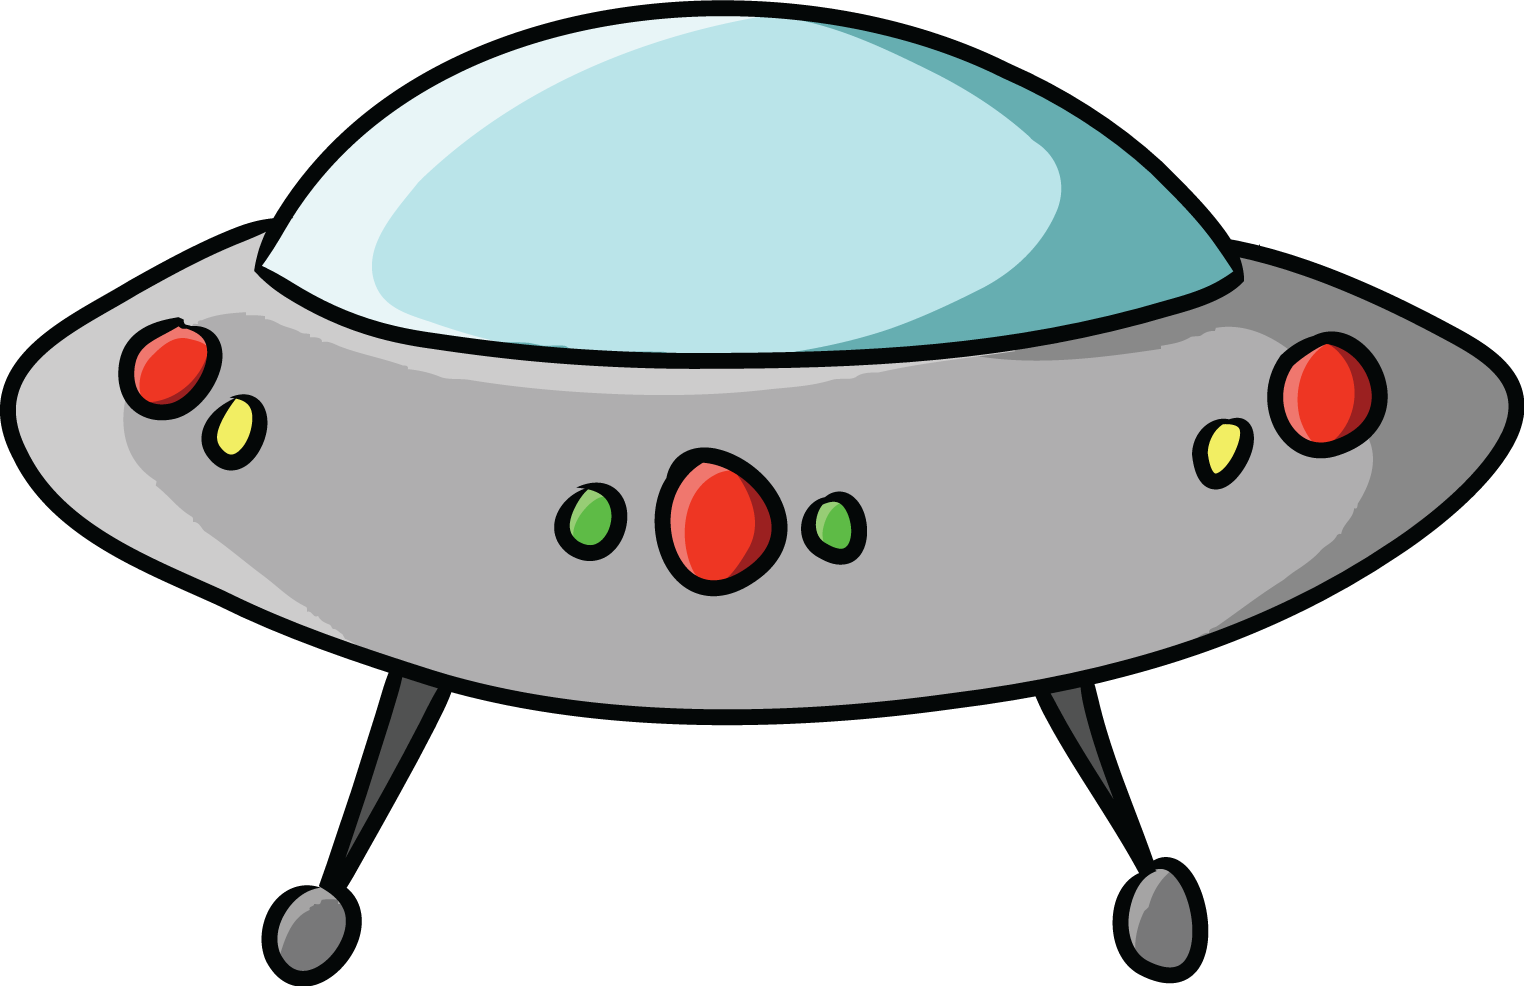 clip art royalty free download . Ufo clipart